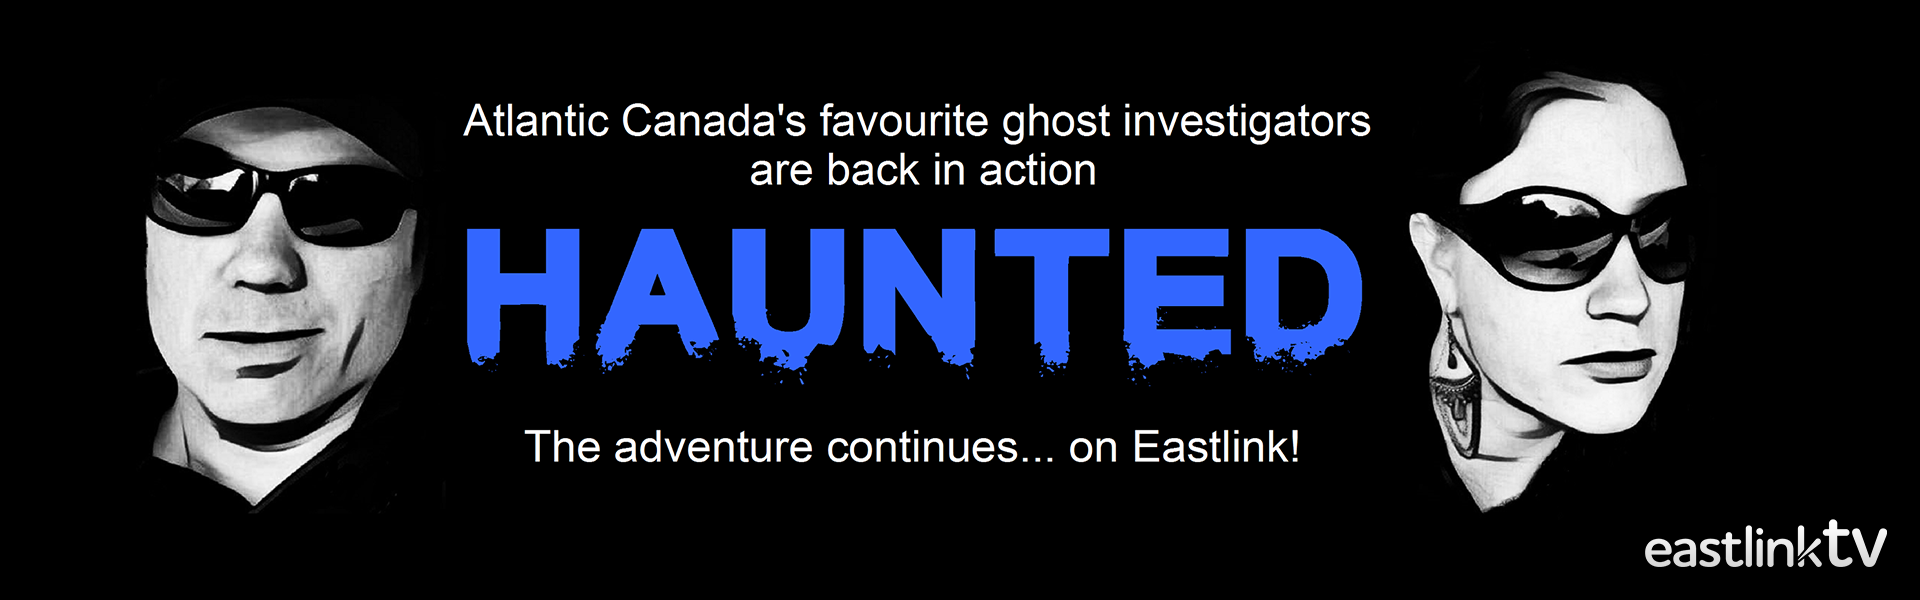 Haunted slide eastlink